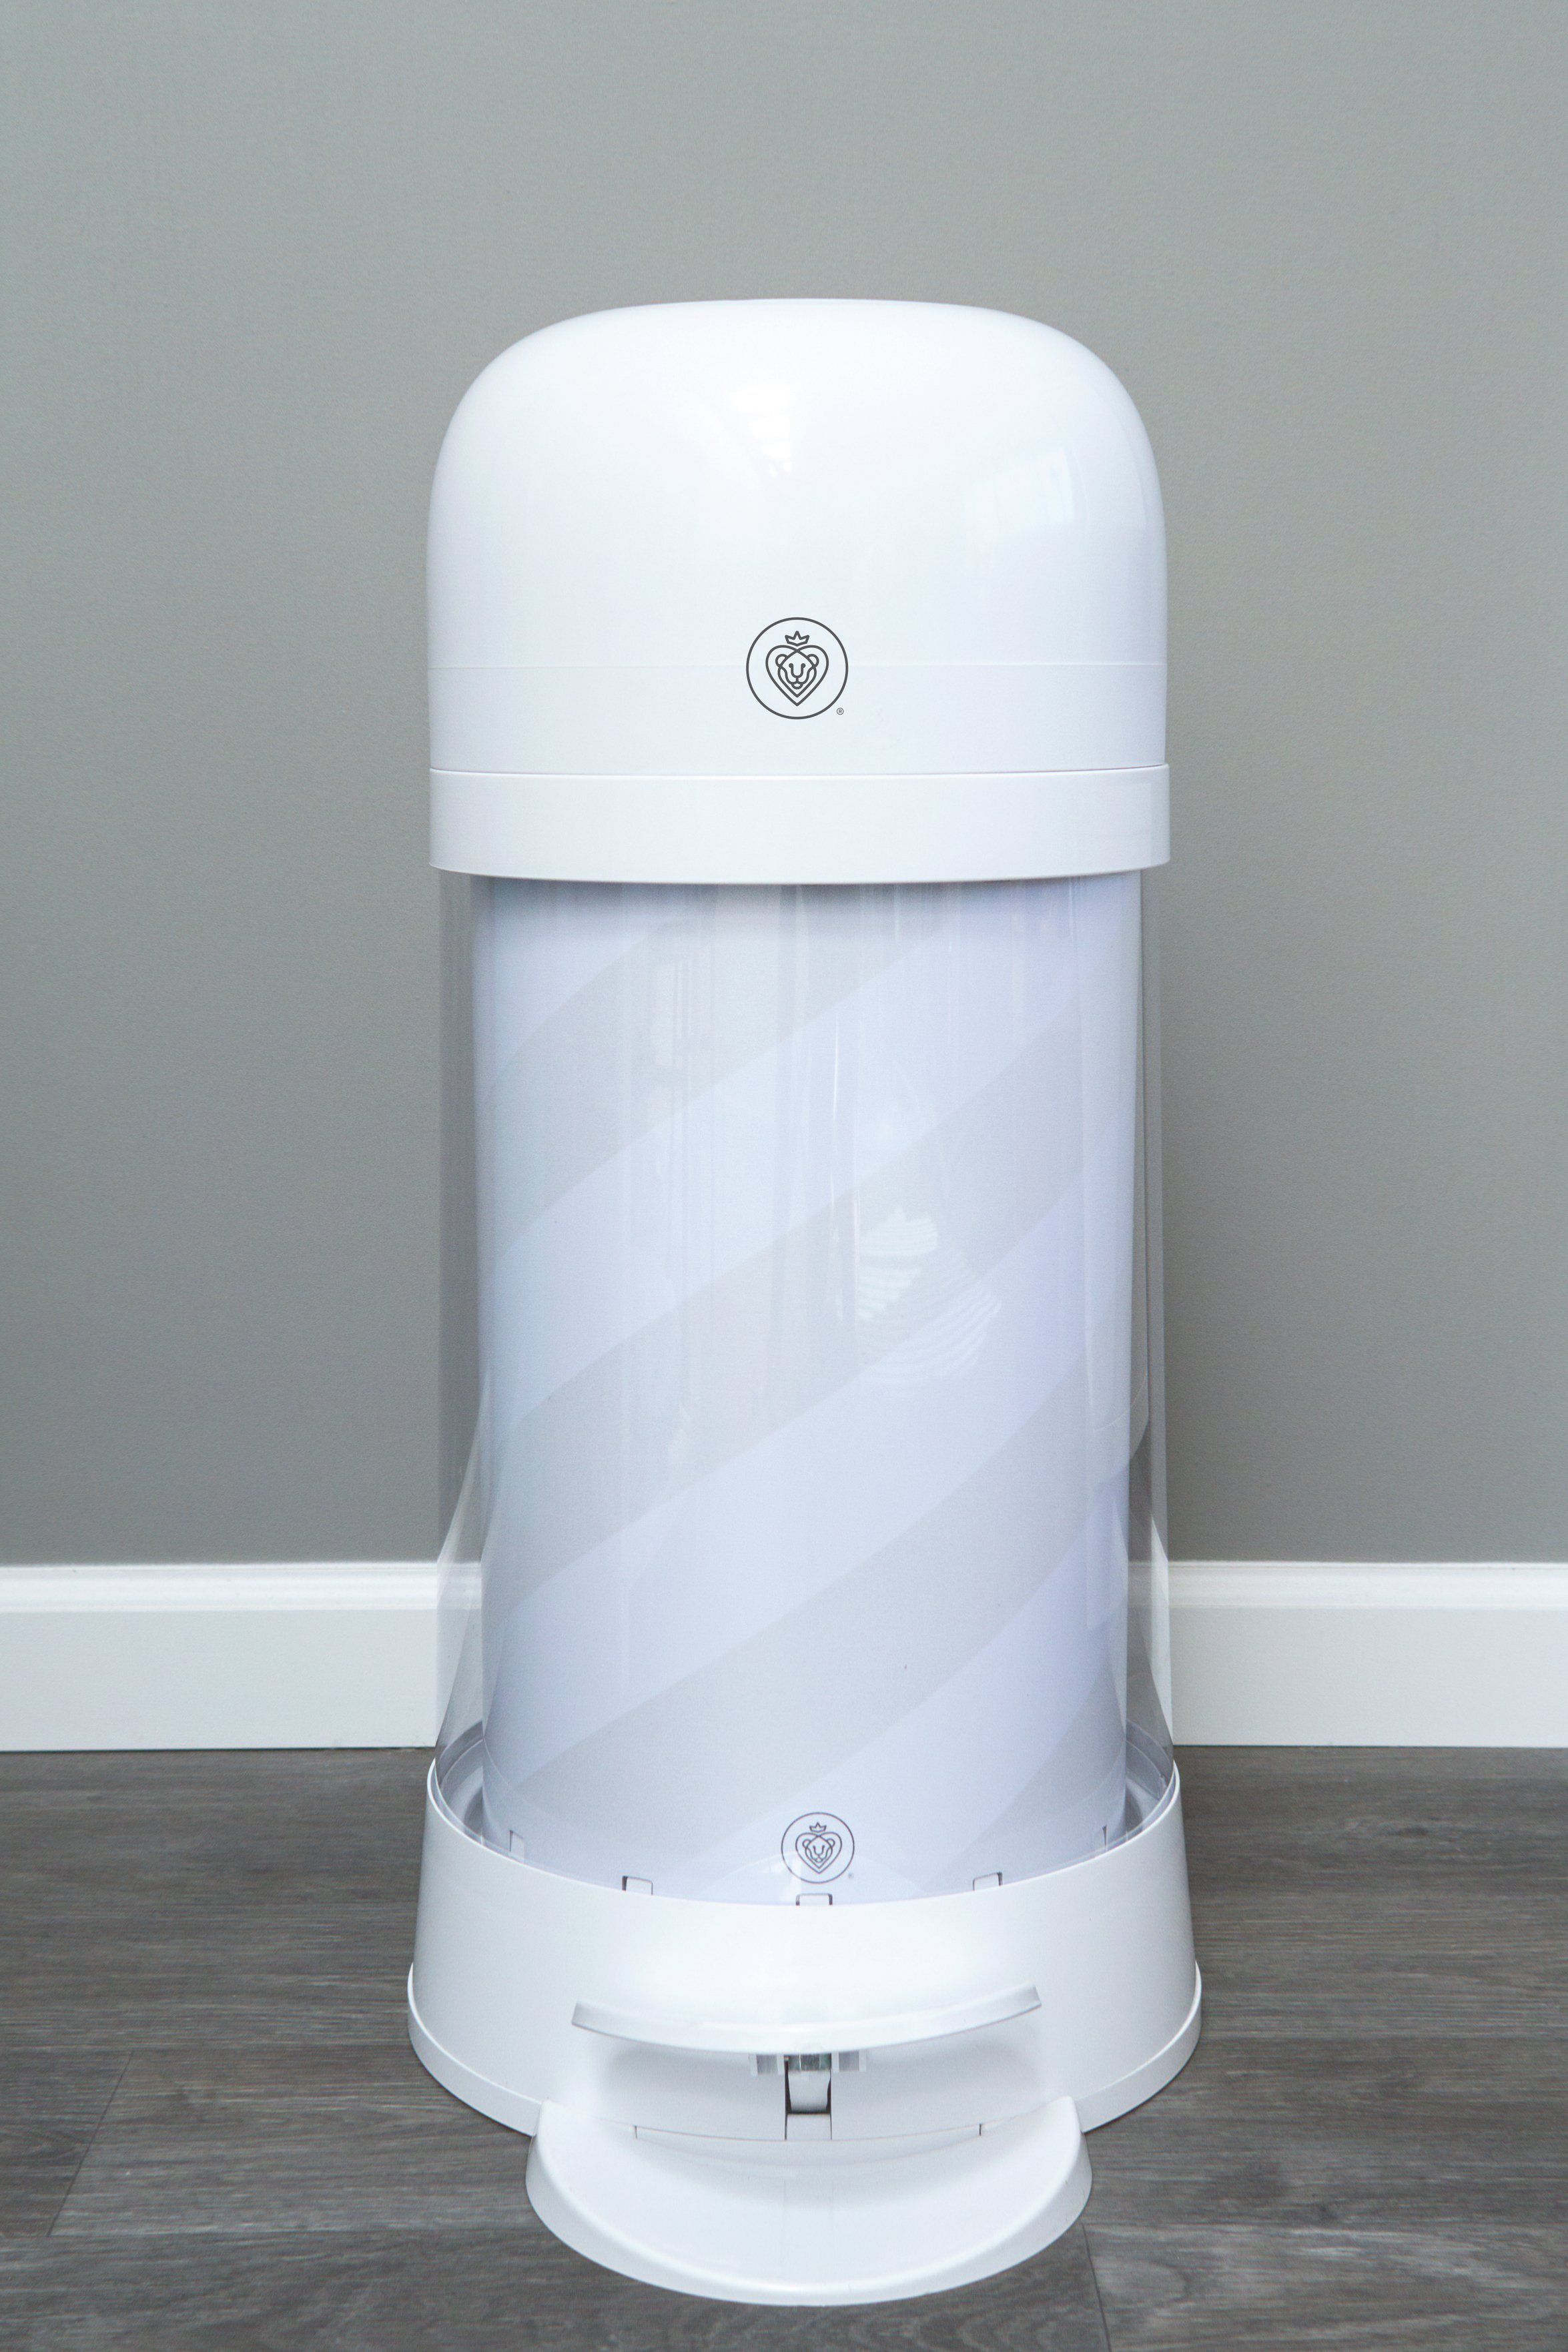 prince-lionheart-twister-nappy-disposal-system-white